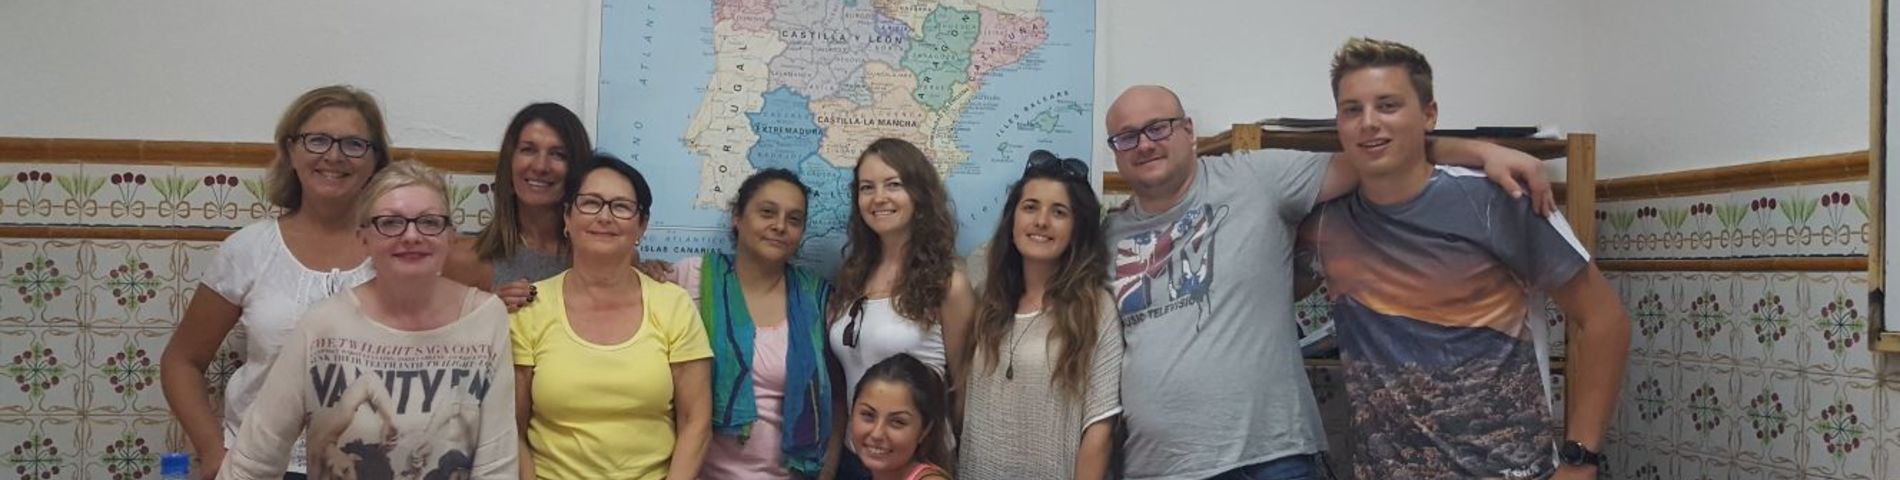 Spanish Language School Gran Canaria Bild 1